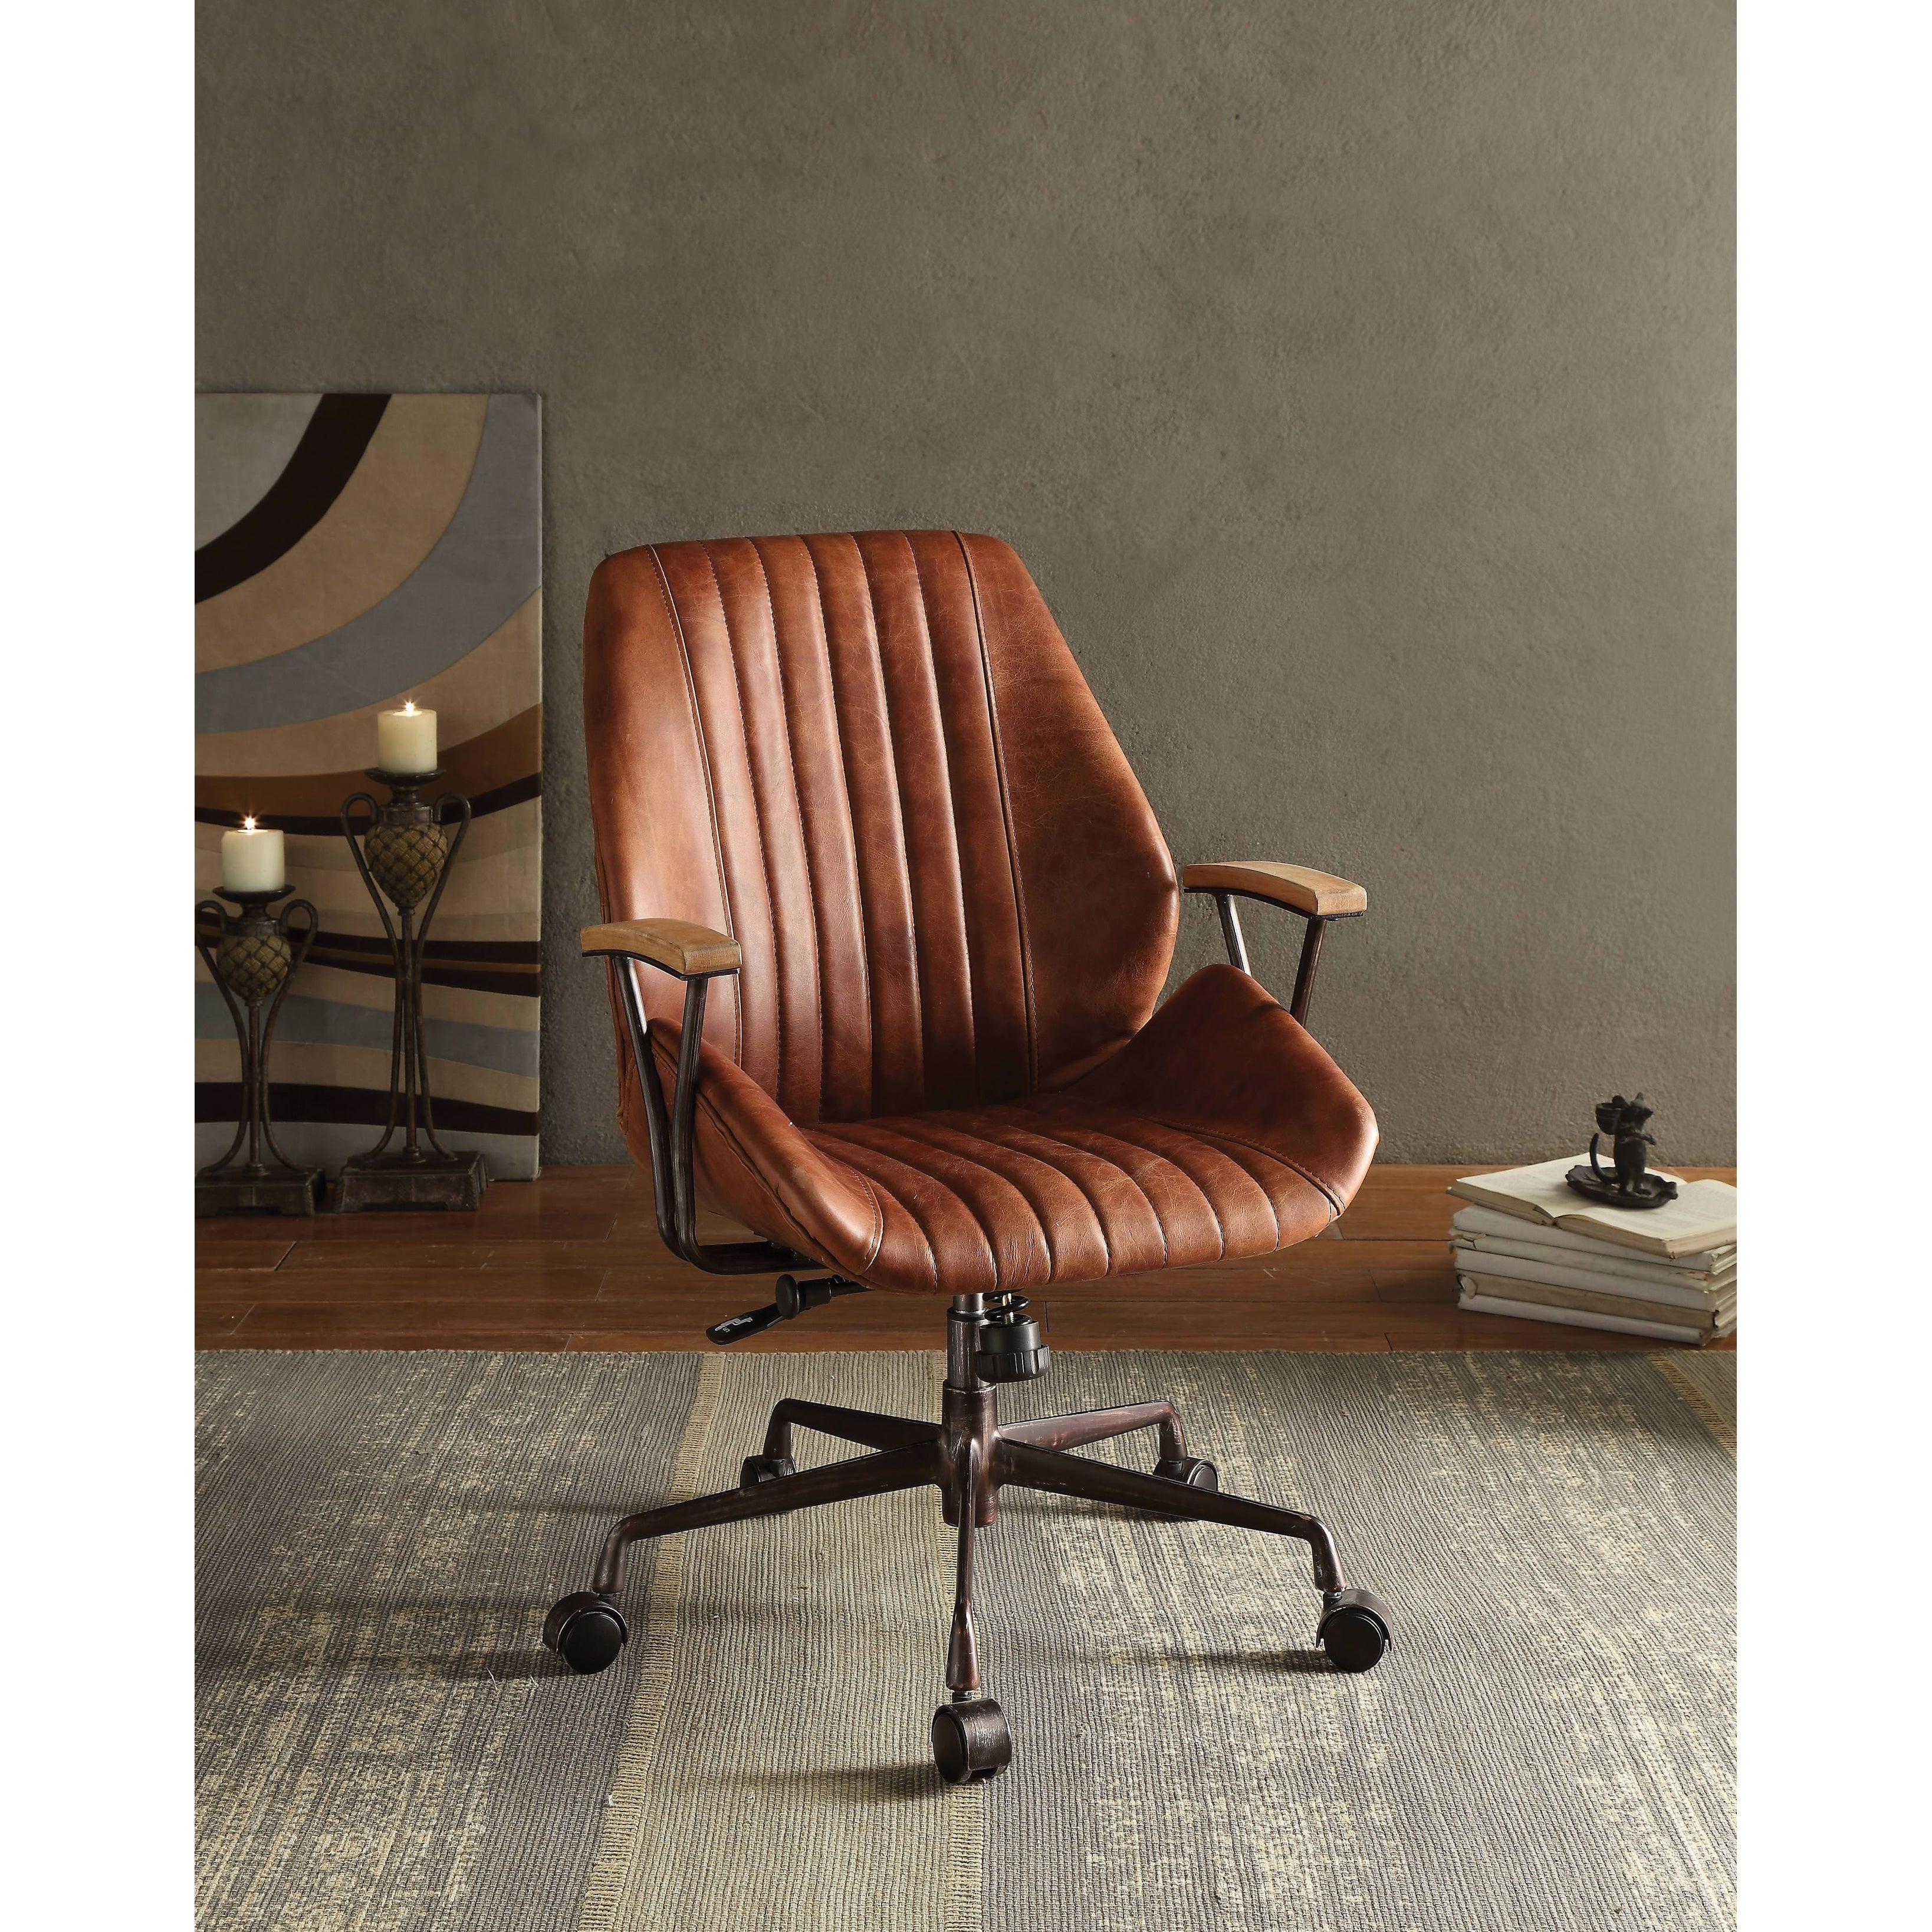 ACME Hamilton Executive Office Chair Cocoa Top Grain Leather  sc 1 st  Overstock.com & Buy Vintage Office u0026 Conference Room Chairs Online at Overstock.com ...